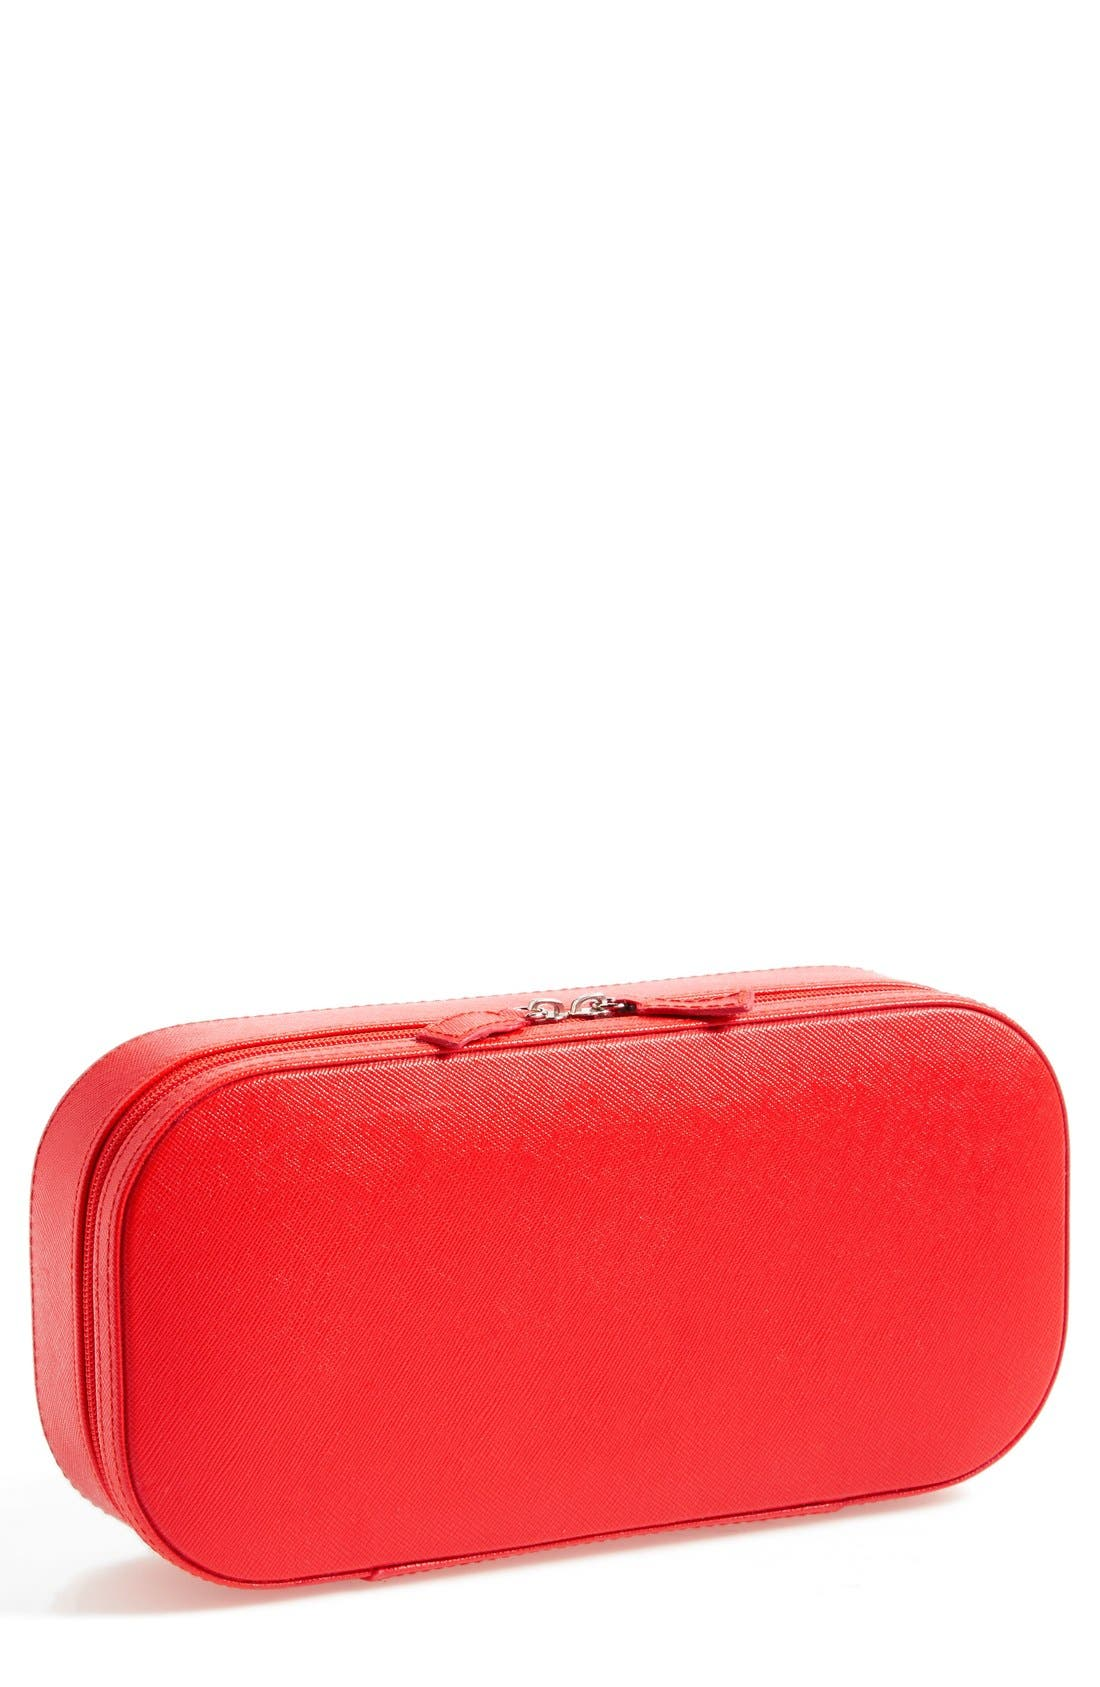 Main Image - Nordstrom Travel Jewelry Case